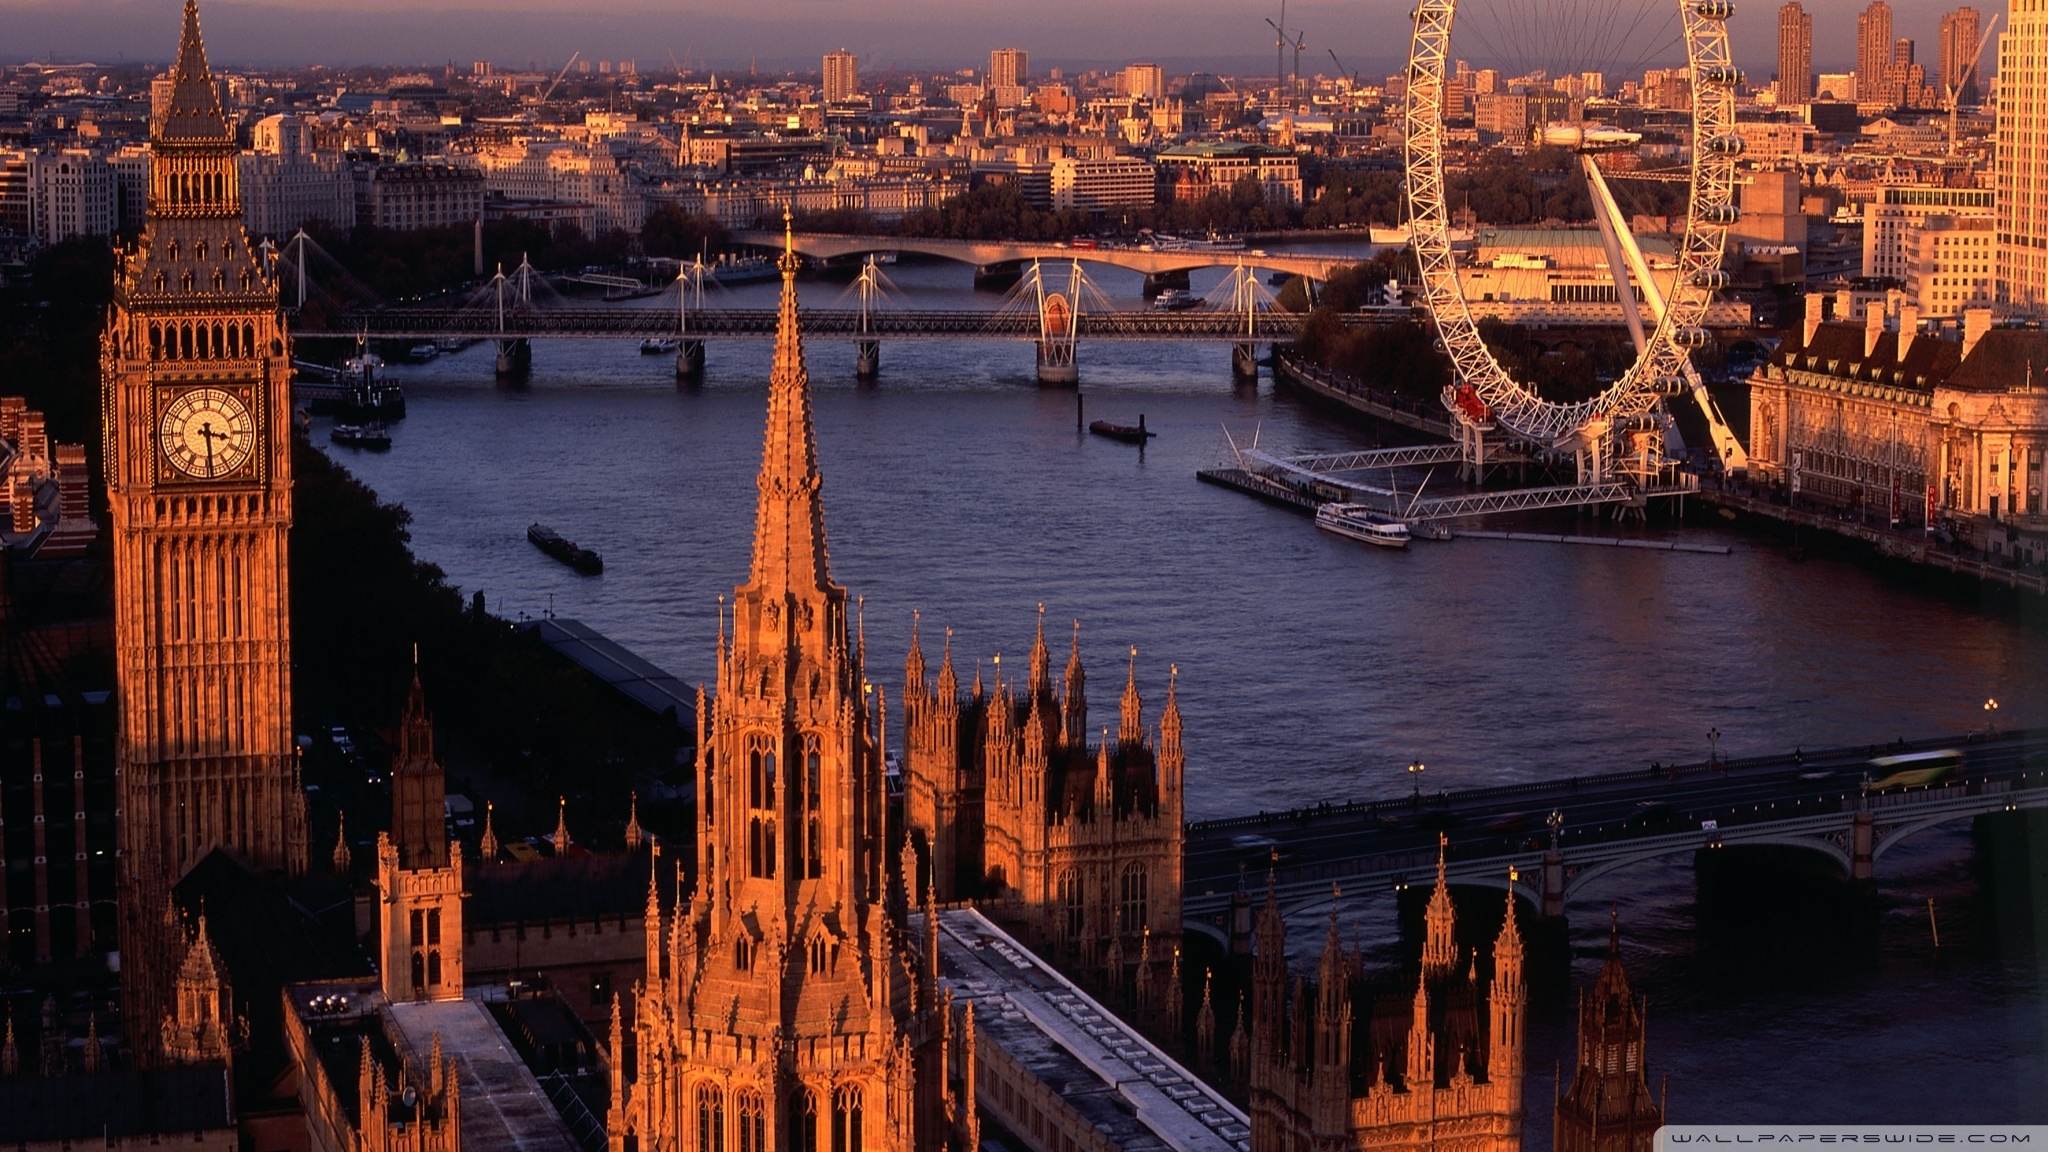 10 Latest London Desktop Wallpaper Tumblr FULL HD 1920×1080 For PC Desktop